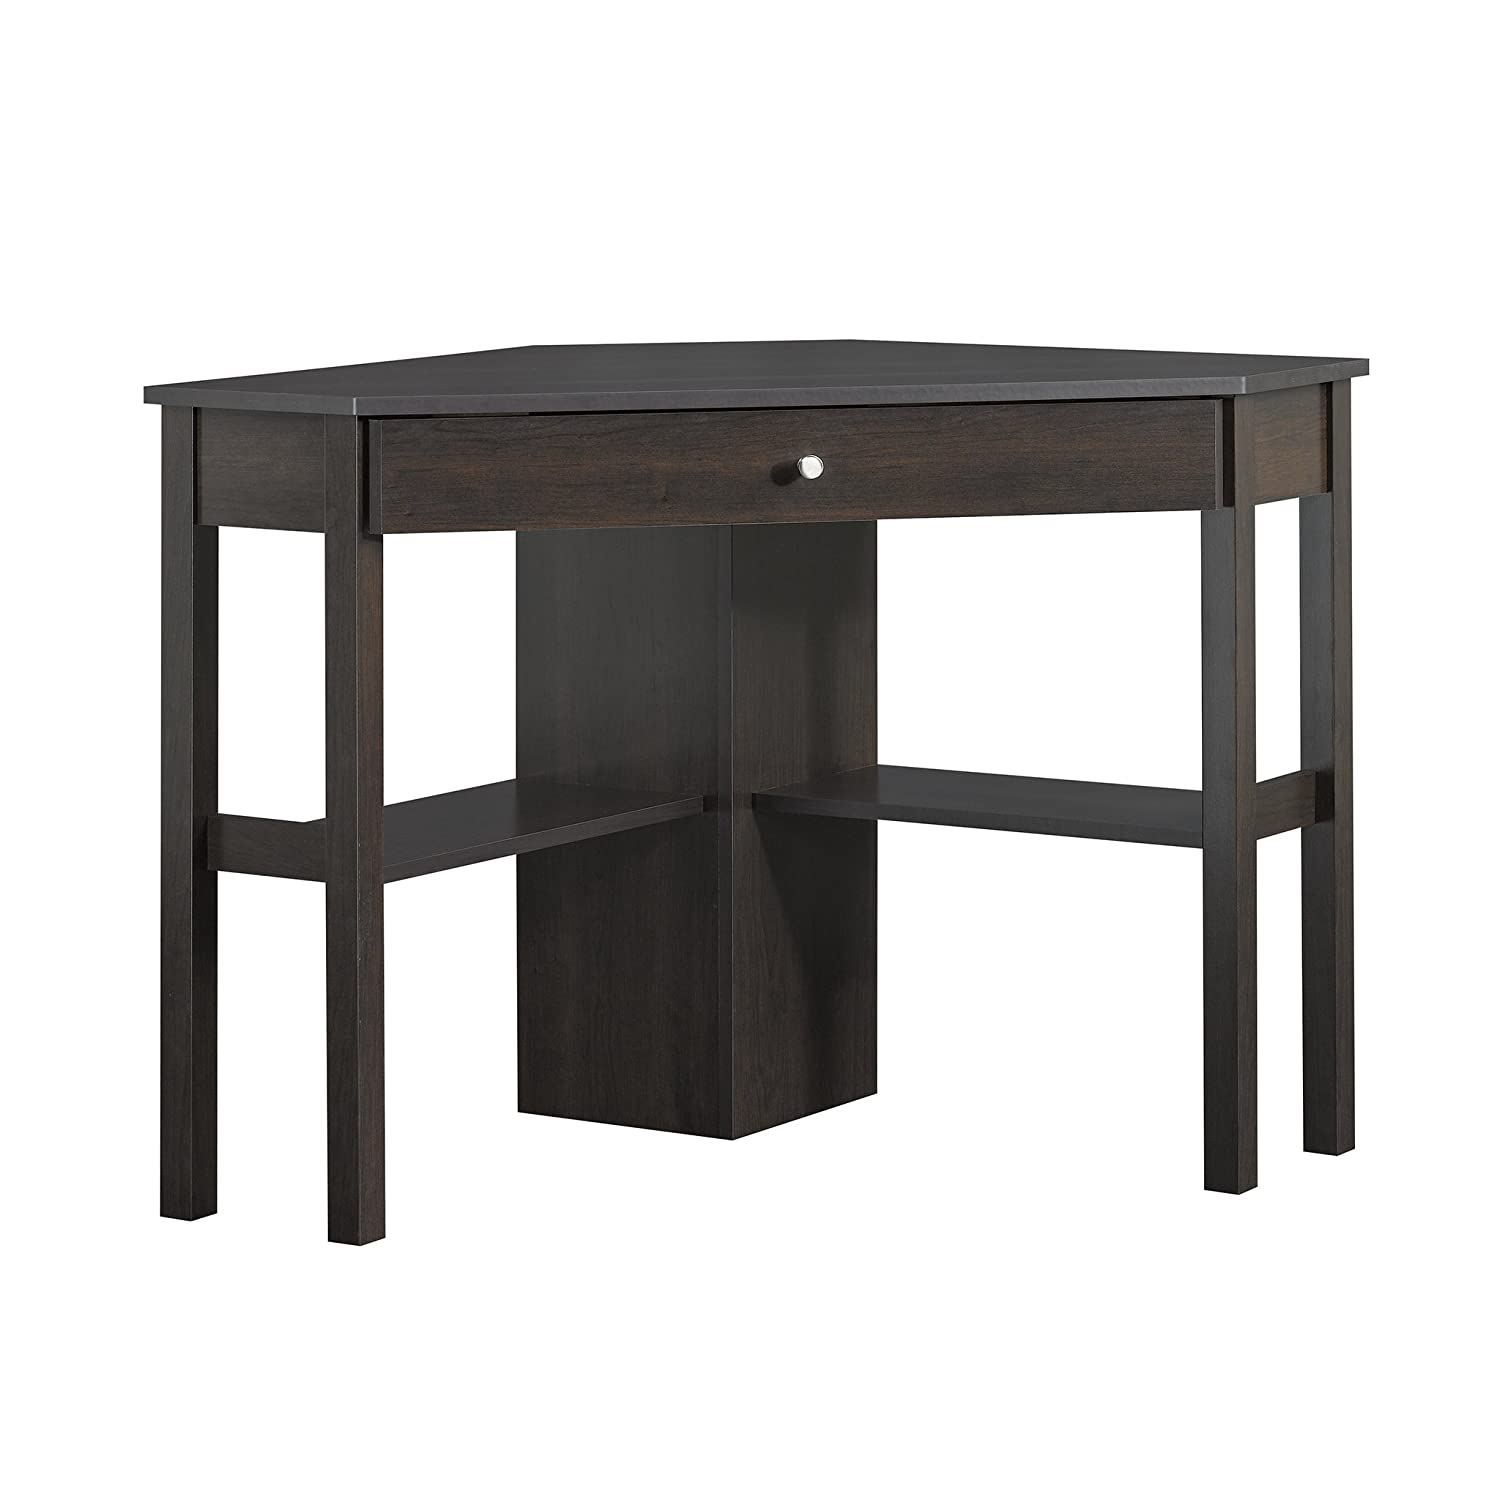 Sauder Beginnings Corner Computer Desk, Cherry 412314